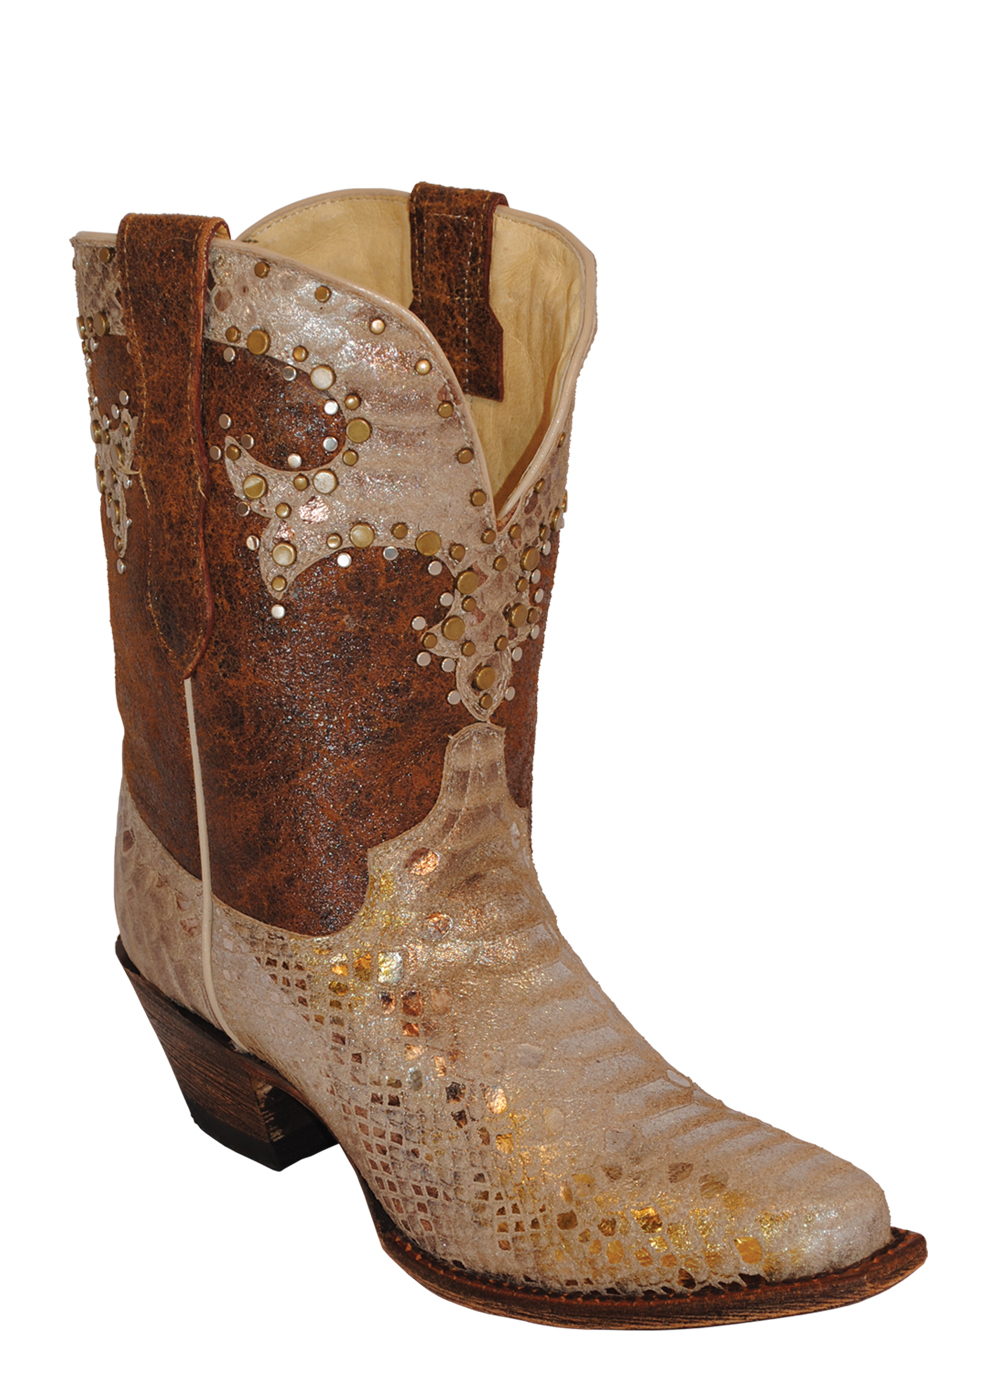 Simple  About Women39s Python Boots On Pinterest  Lady Python And Leather